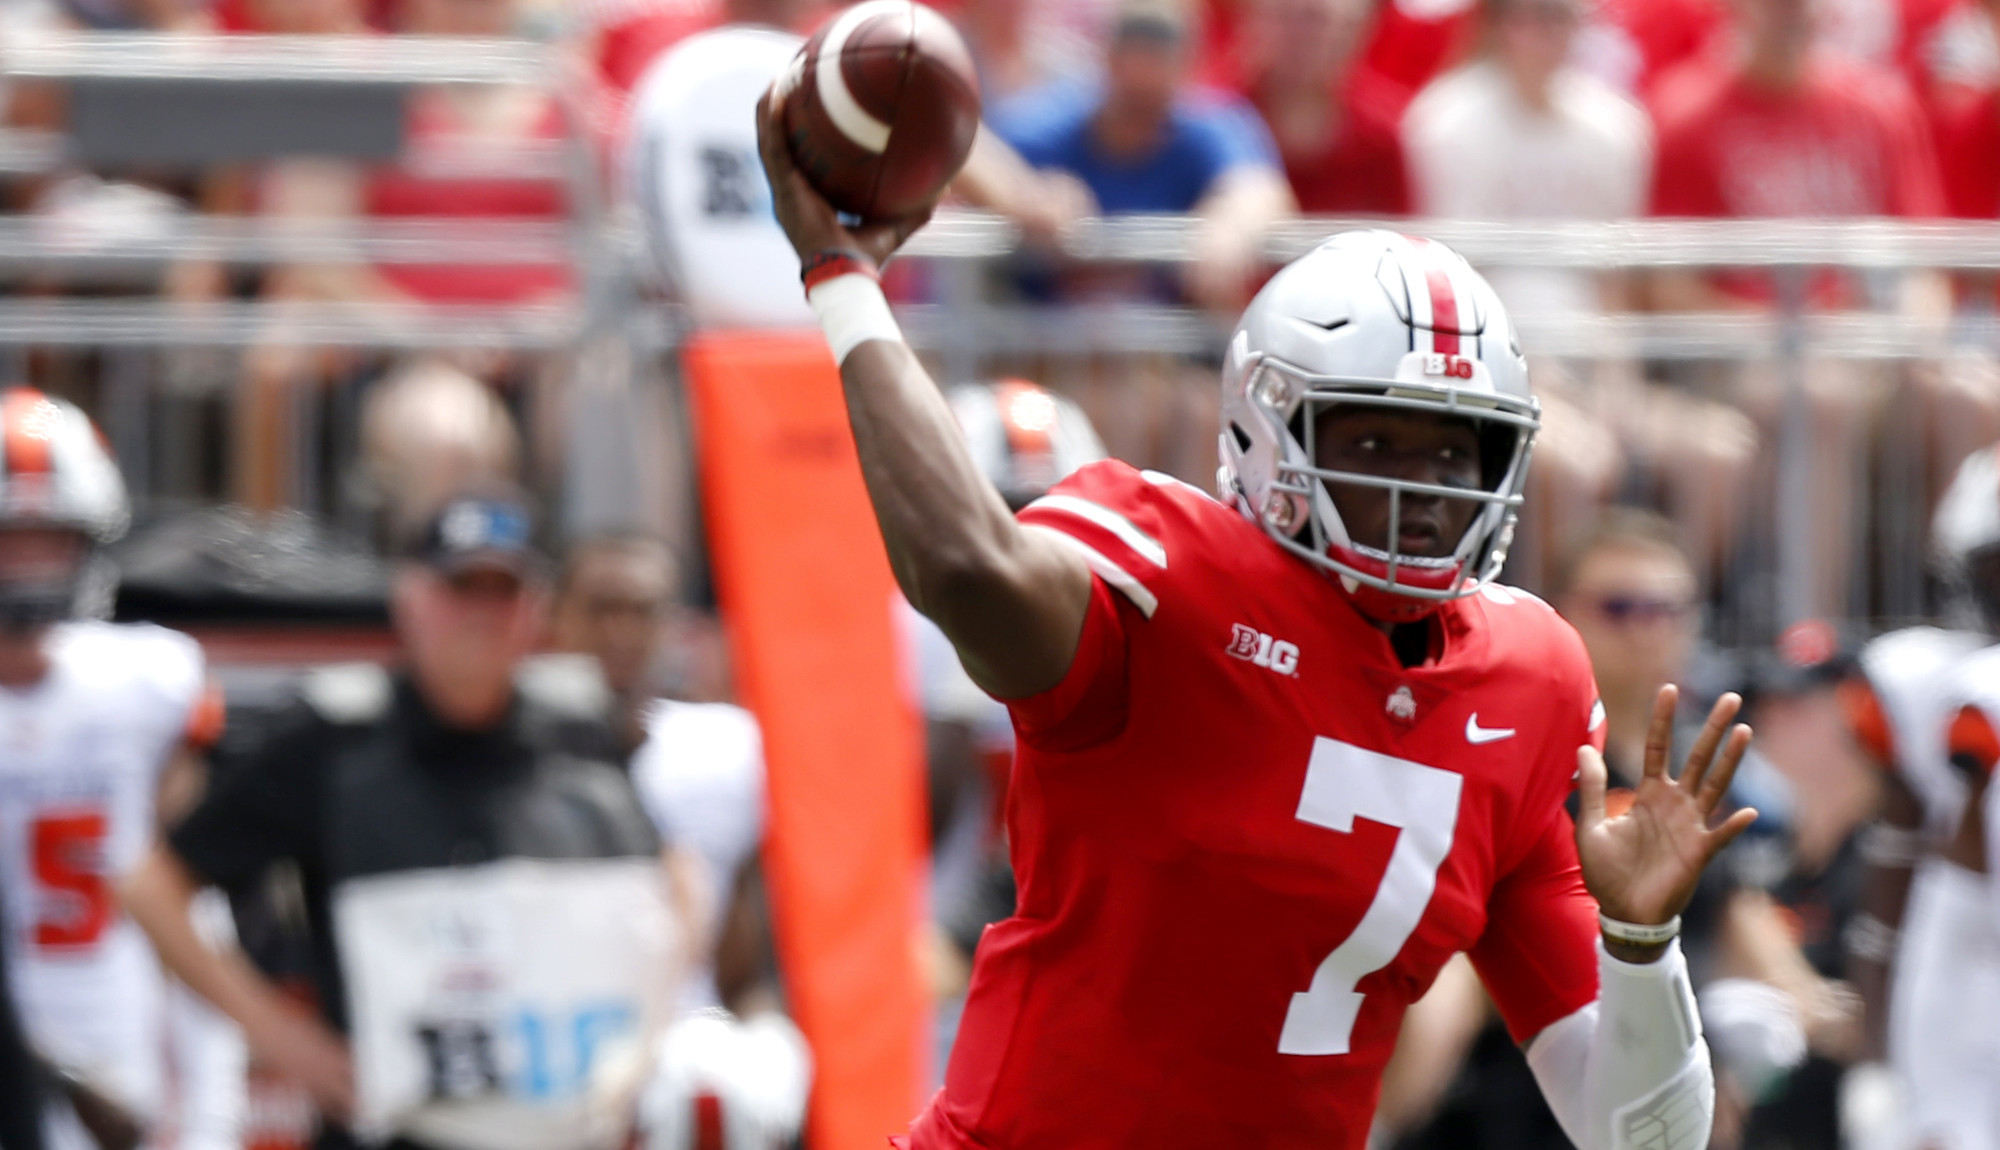 College football: Ohio State trounces Oregon State 77-31; Maryland upsets Texas; Alabama rolls